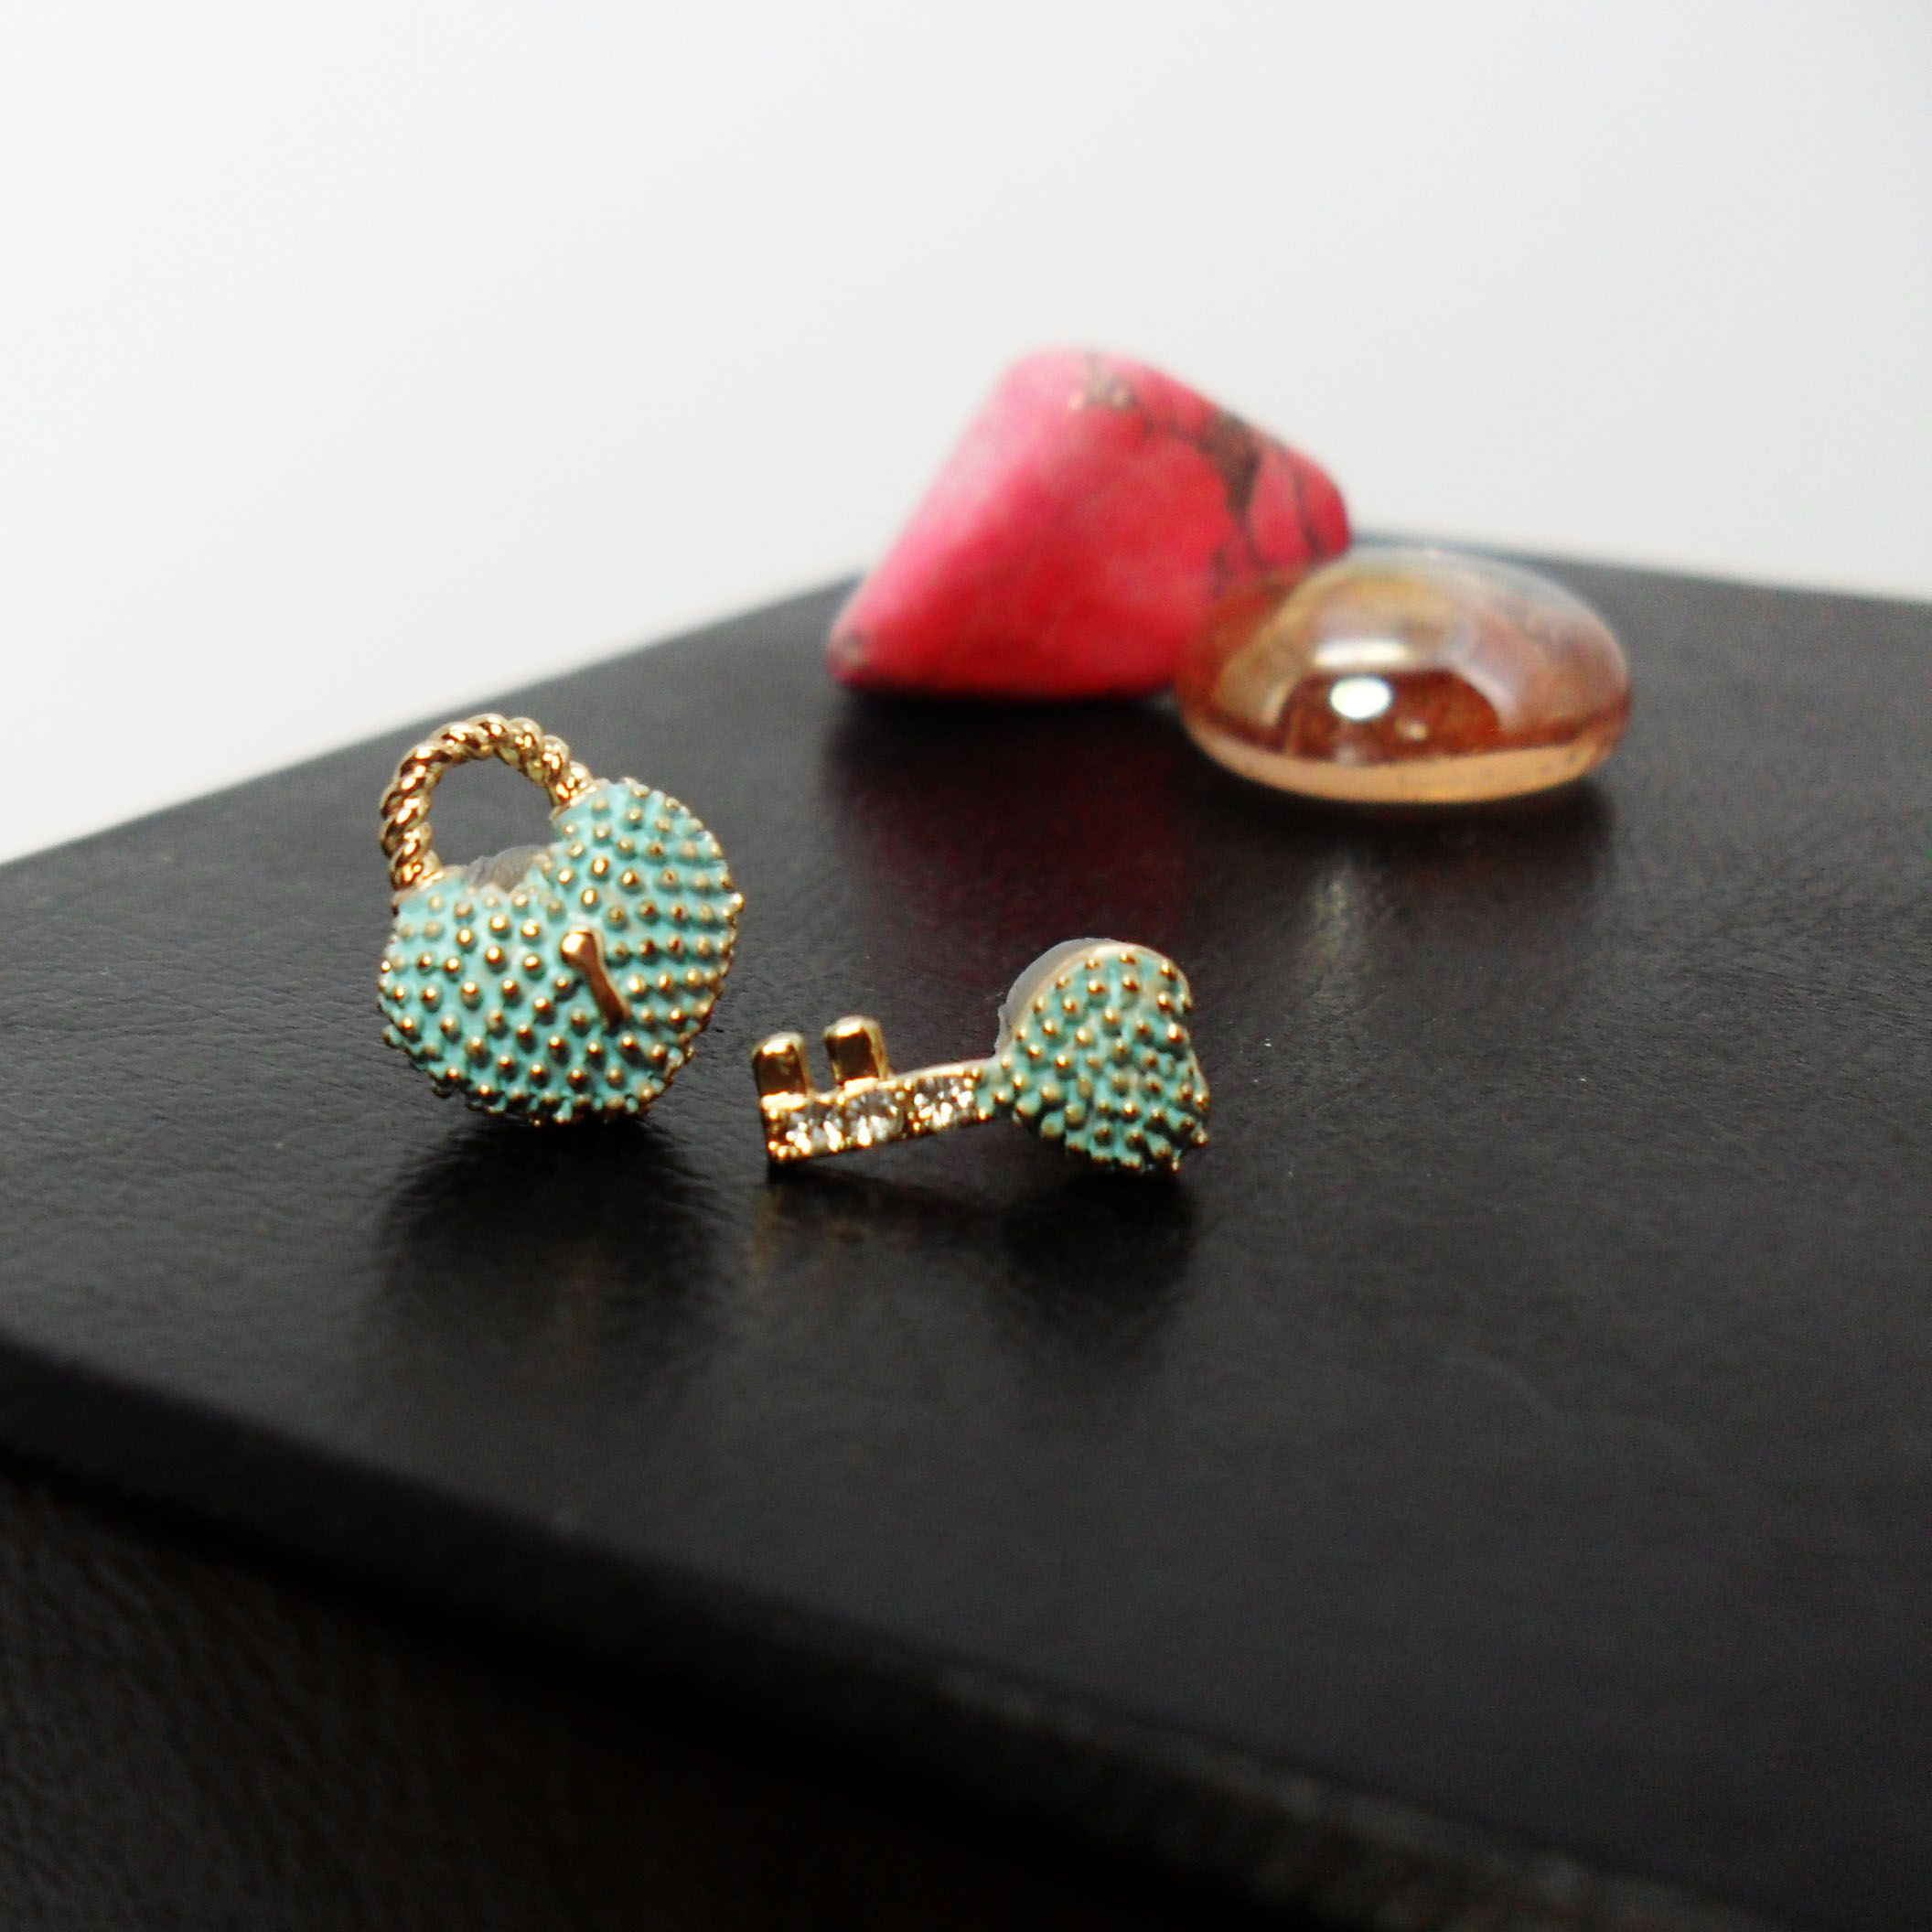 mismatched stud earrings pin initial